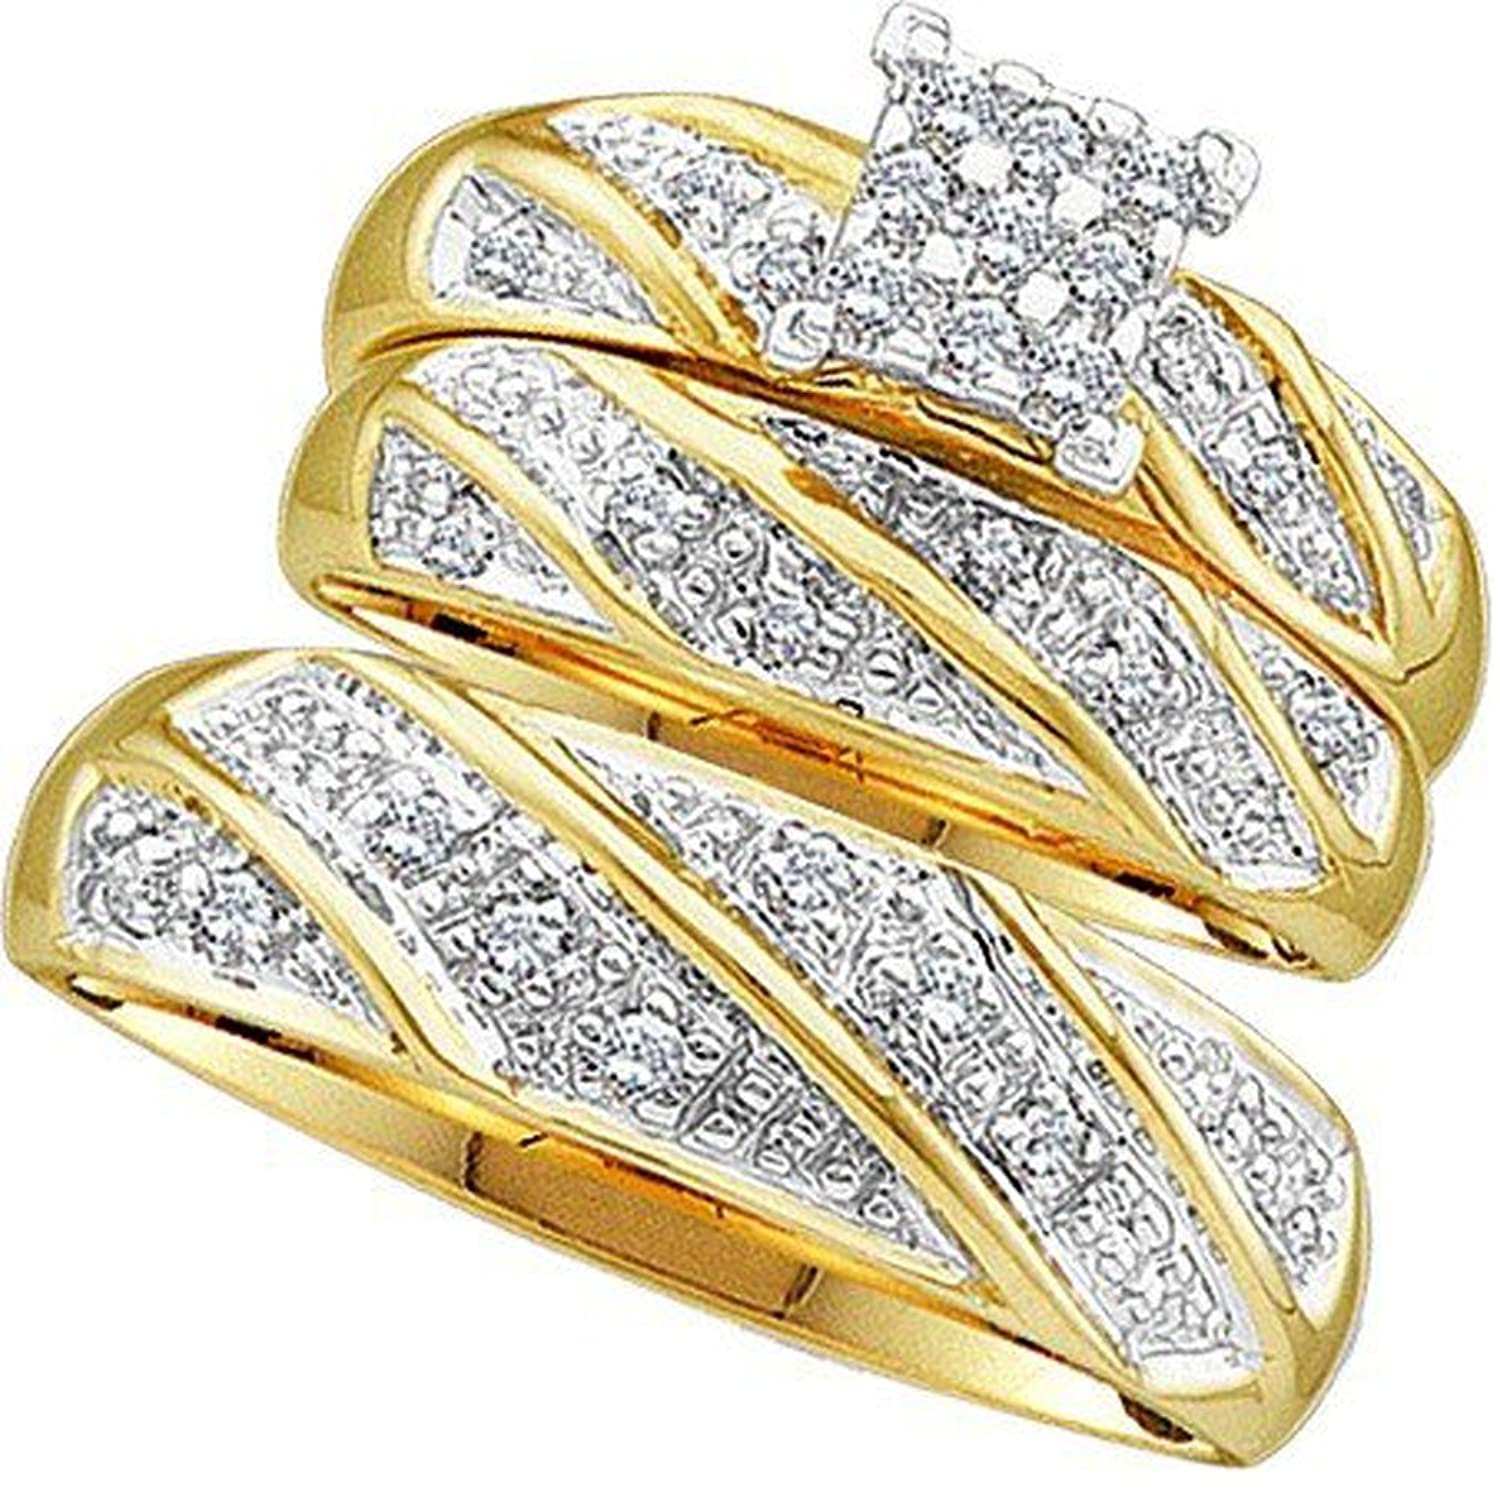 her yellow ideas of wedding band for gold com bands ring men collection atdisability